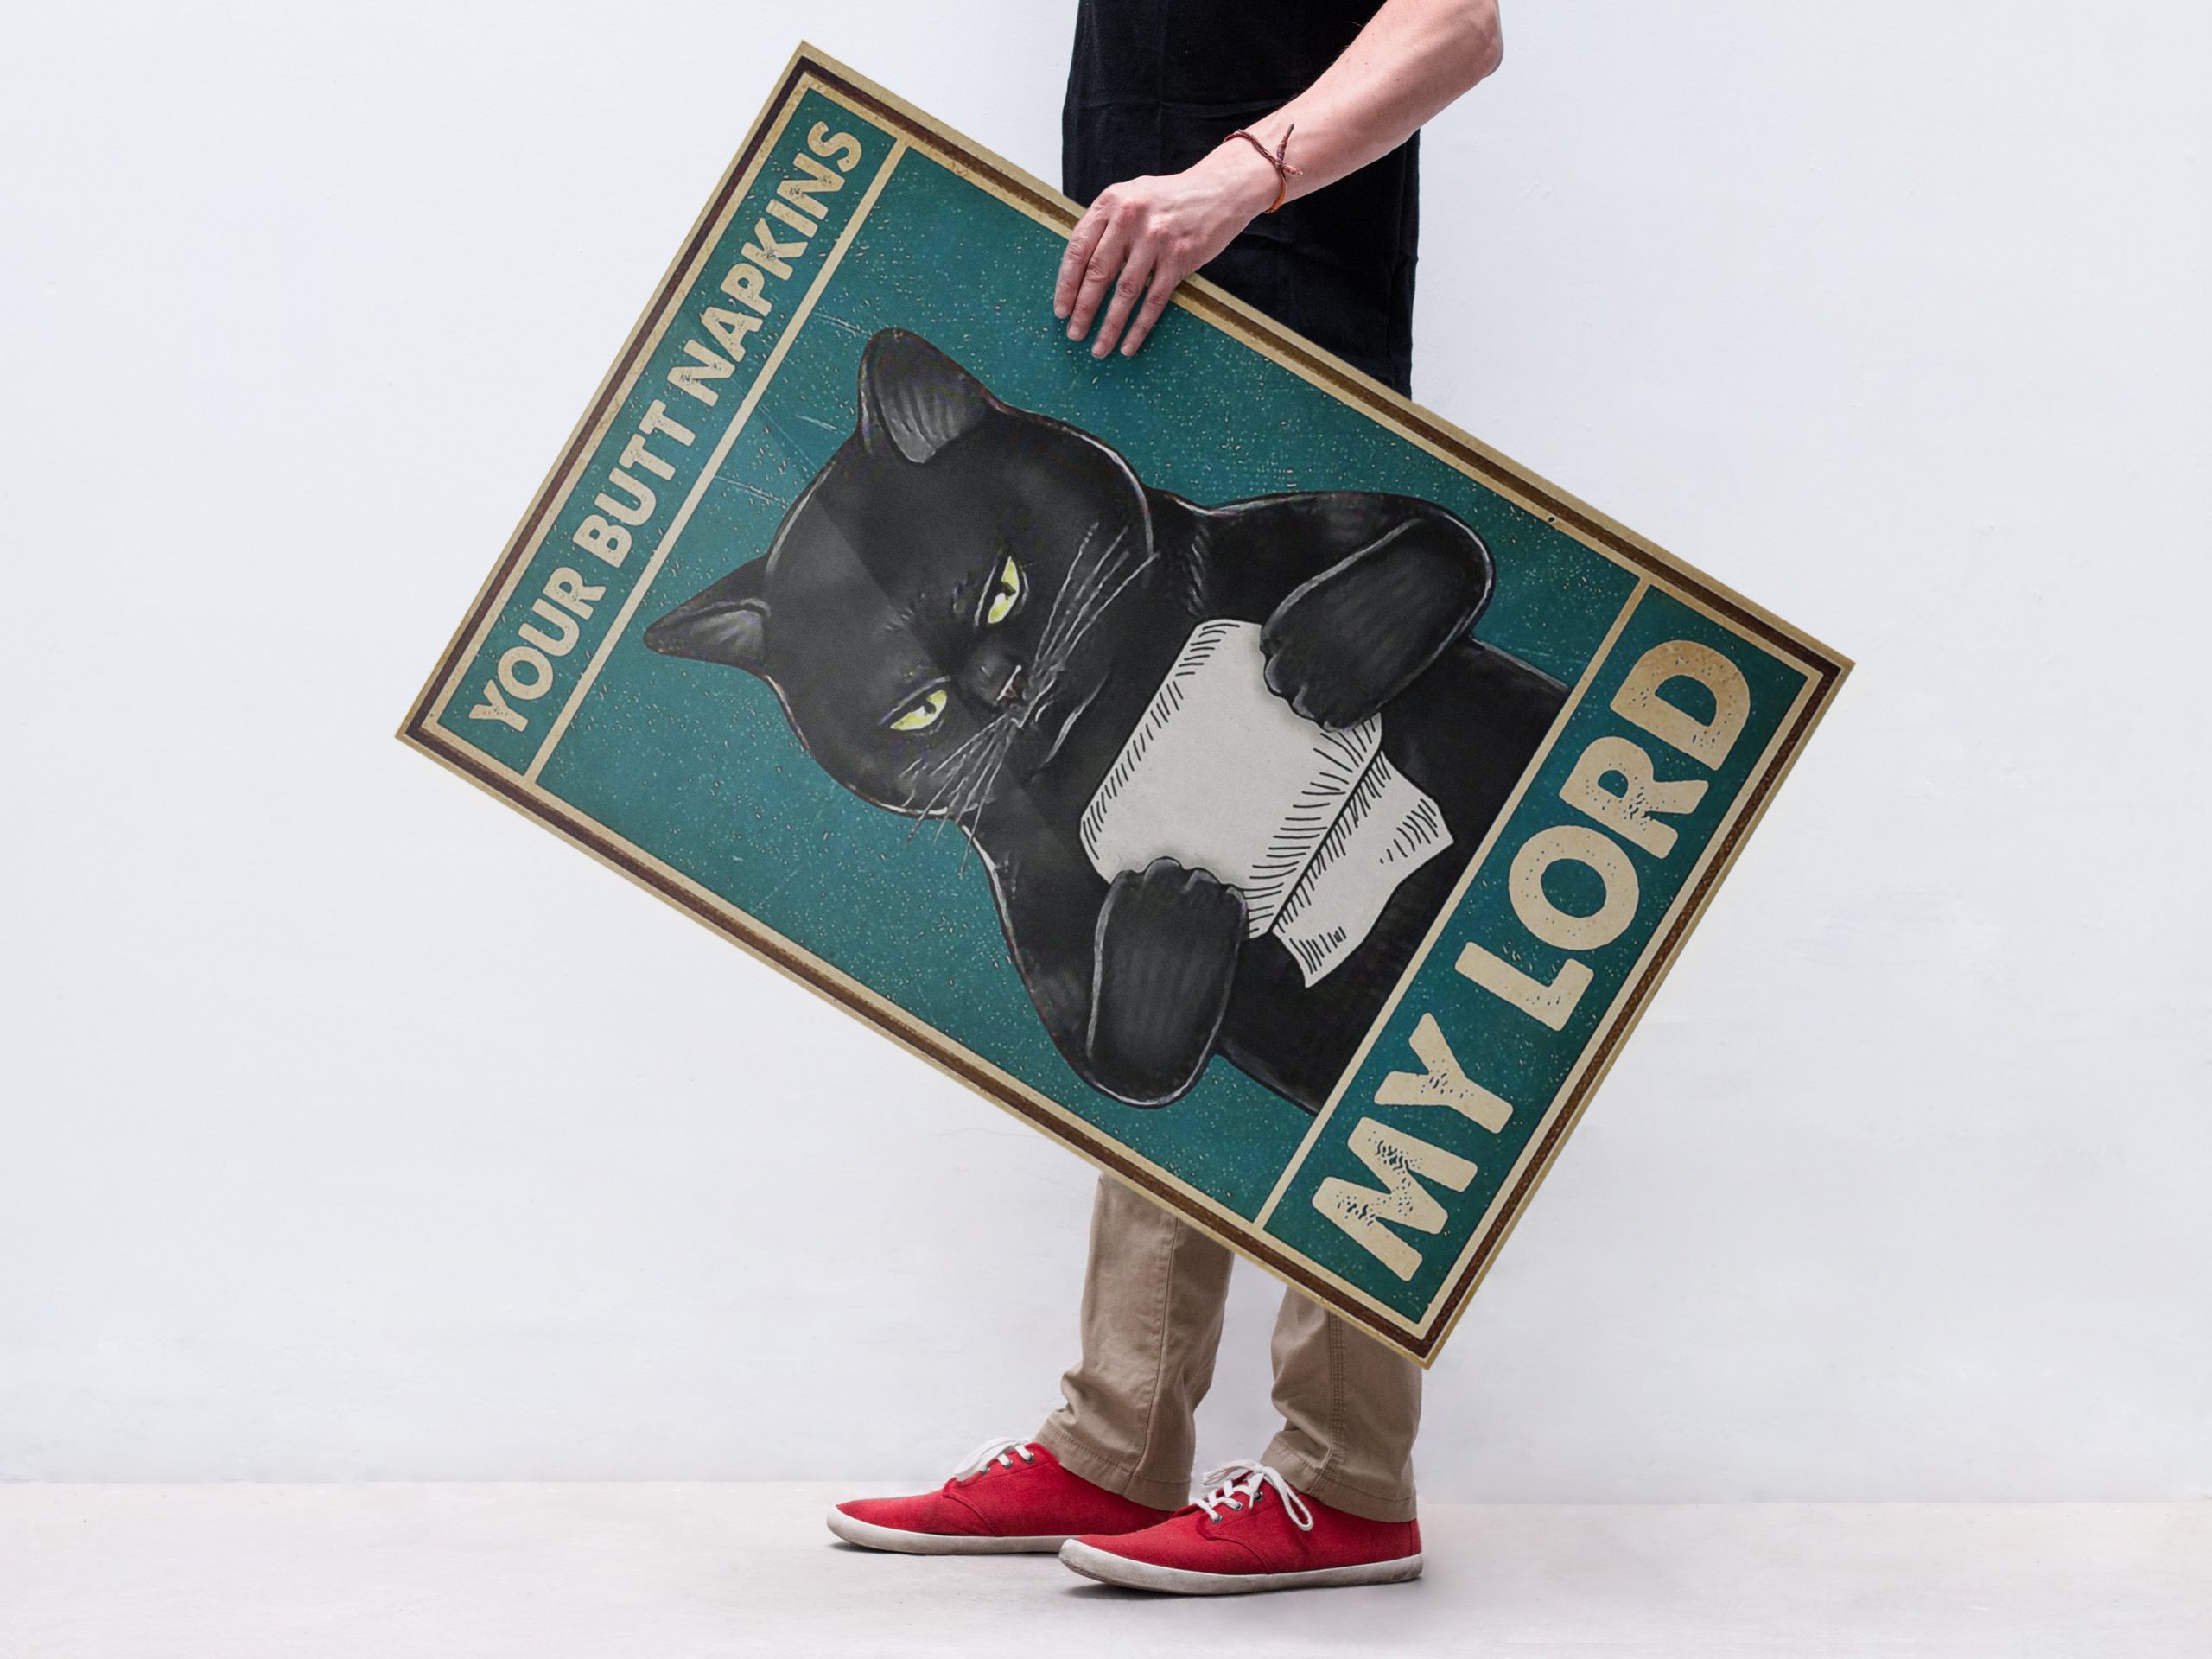 Black cat your butt napkins my Lord poster 2